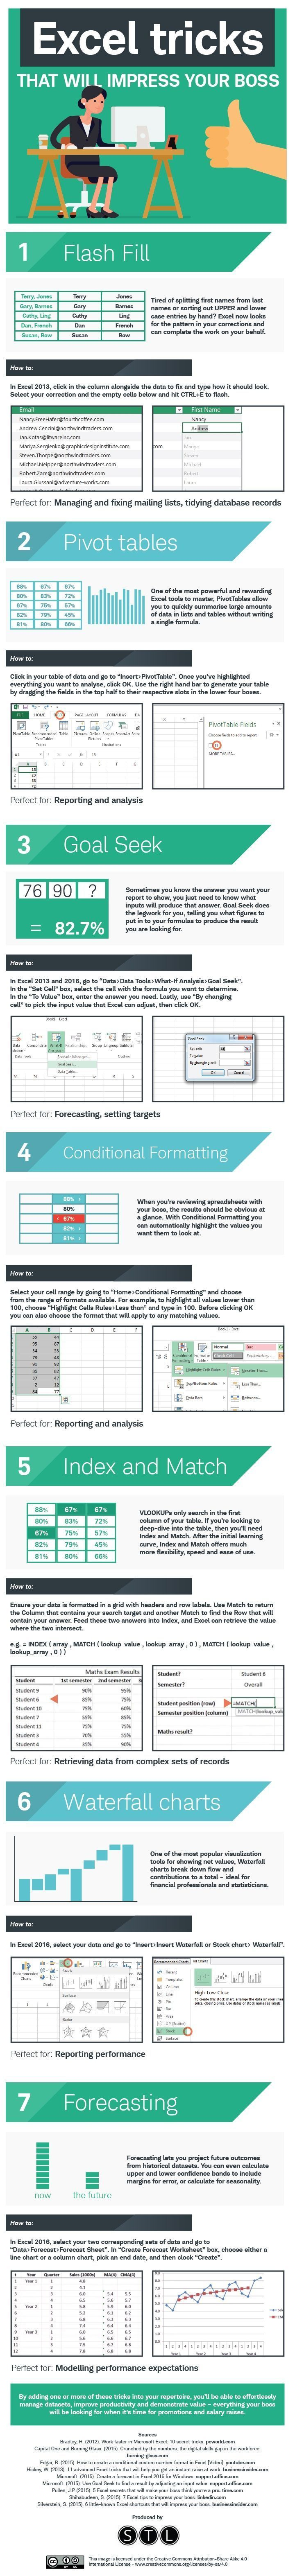 25 best Excel images on Pinterest | Microsoft excel, Computers and ...